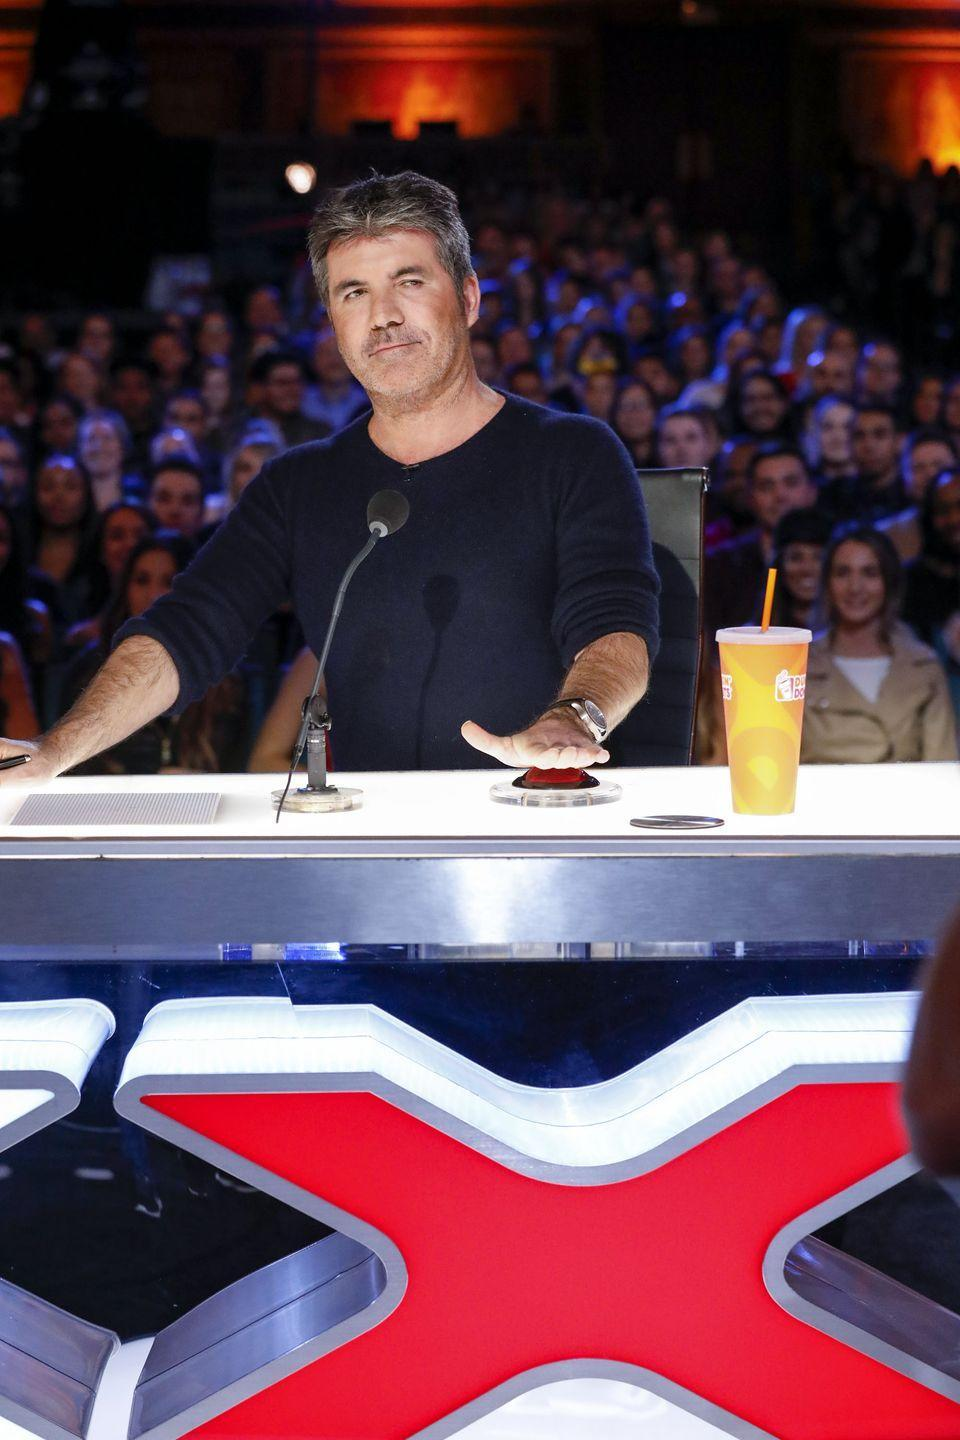 "<p>Contestants aren't allowed to counter eliminations. What is said on the show goes and production has the final say, as their decisions are <a href=""https://www.scribd.com/document/134719192/AGT-Contract?"" rel=""nofollow noopener"" target=""_blank"" data-ylk=""slk:protected by the signed contracts"" class=""link rapid-noclick-resp"">protected by the signed contracts</a>. </p>"